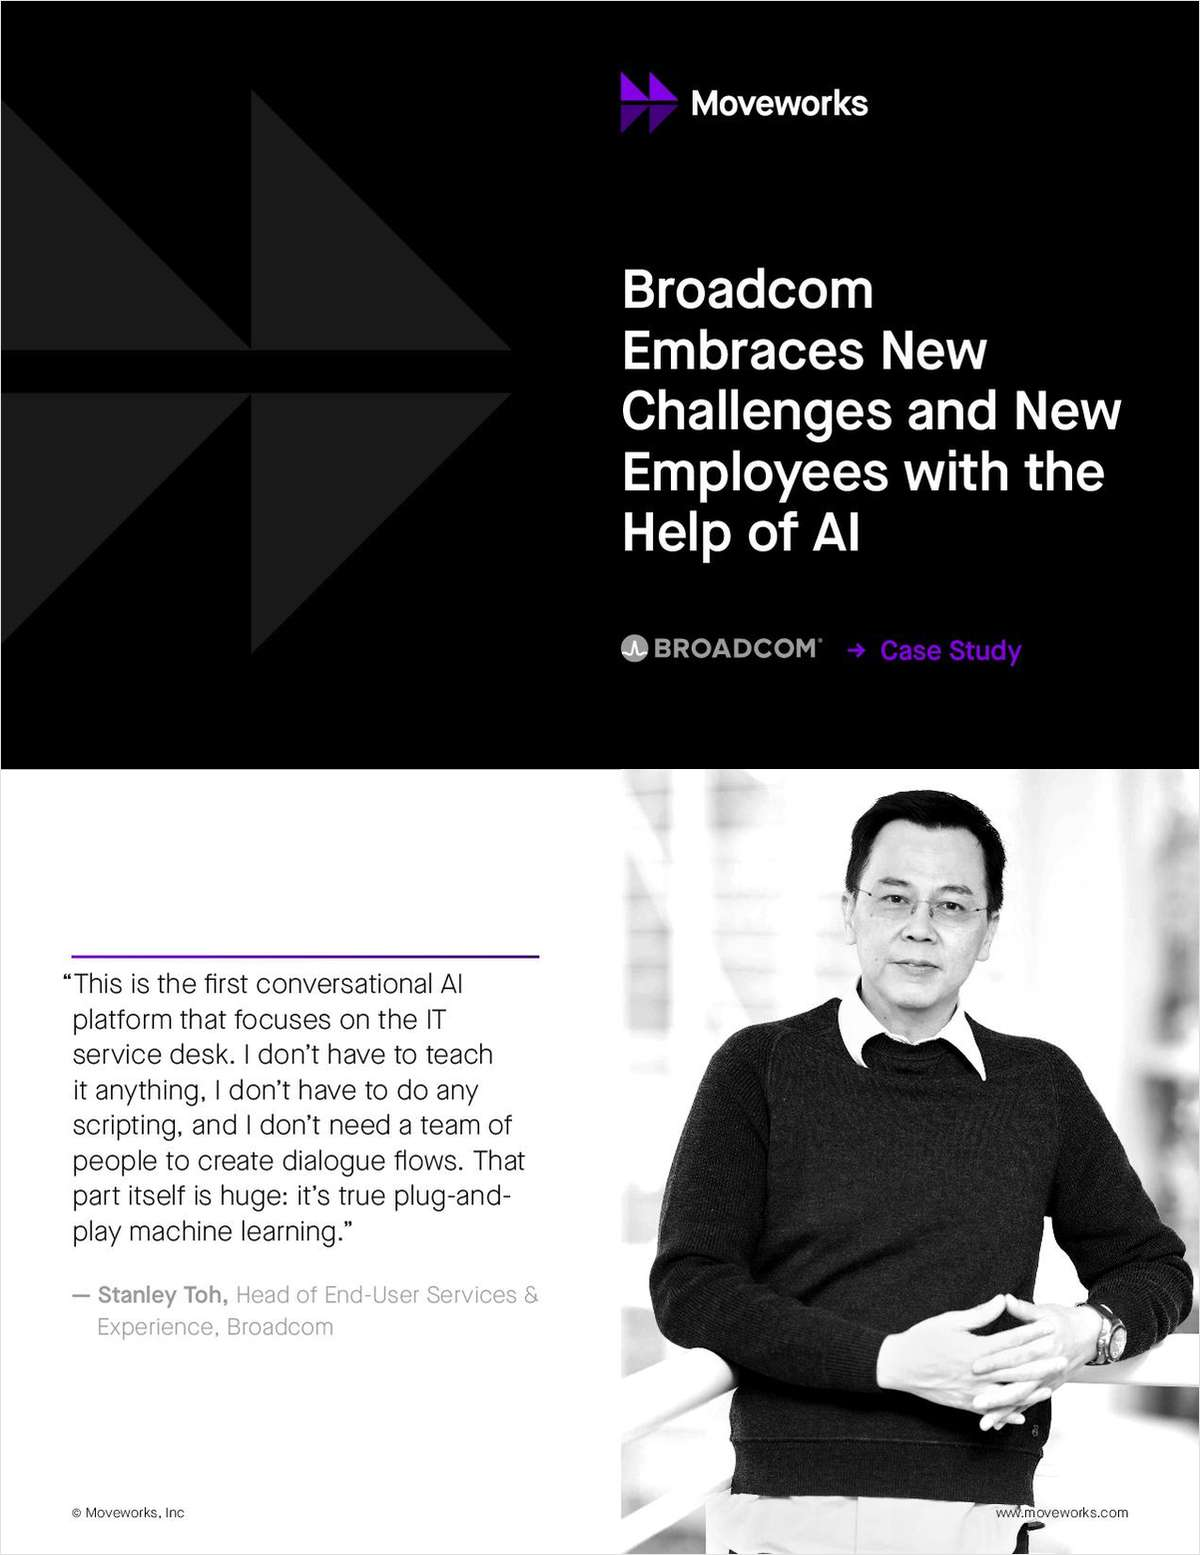 Broadcom Embraces New IT Challenges and New Employees